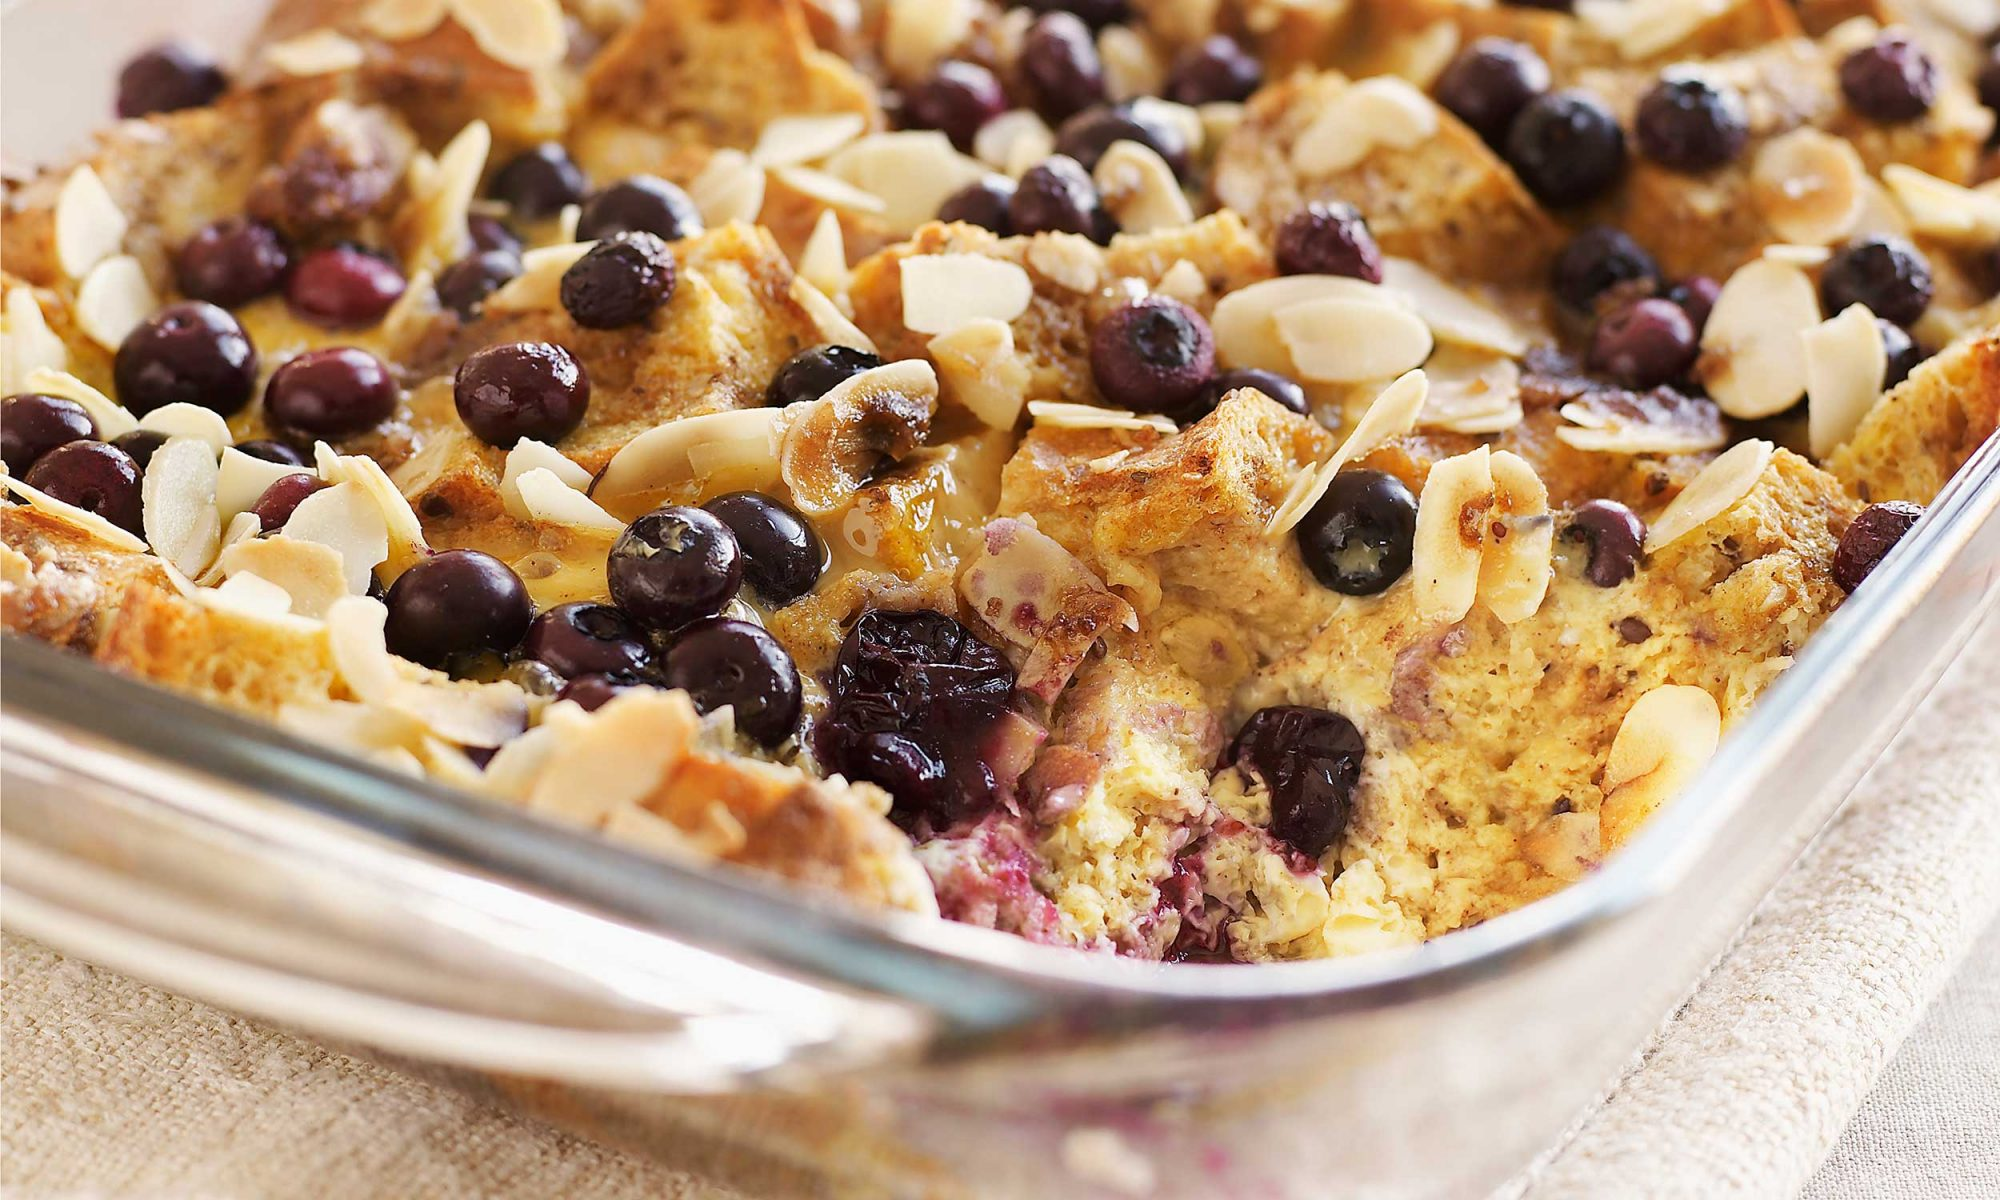 These Baked French Toast Recipes Make Weekday Mornings Easy